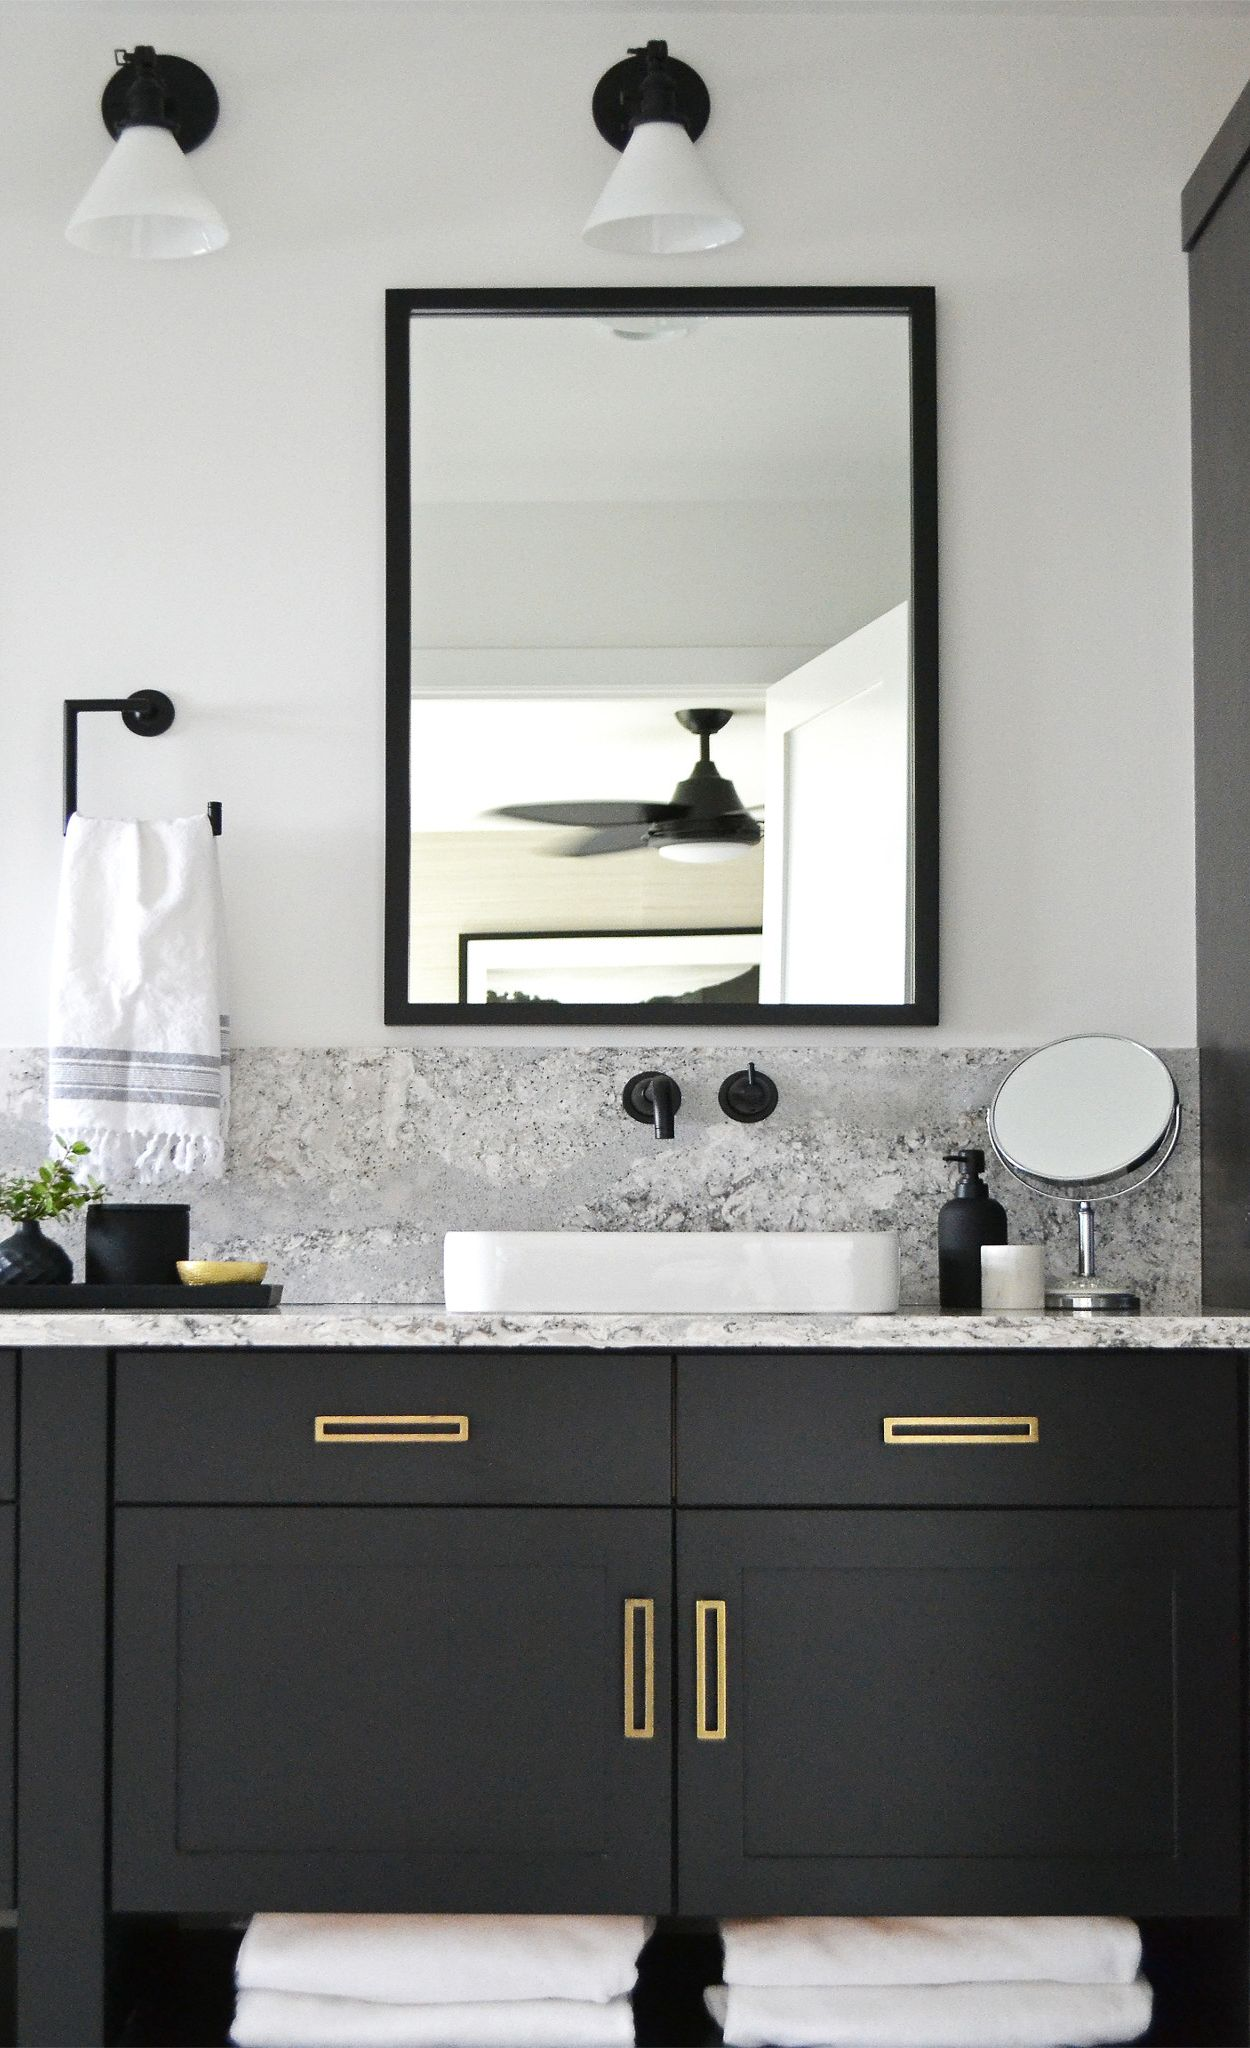 Summerhill™ countertops and backsplash with matte black cabinets, faucet, mirror, light fittings, and vanity decor.